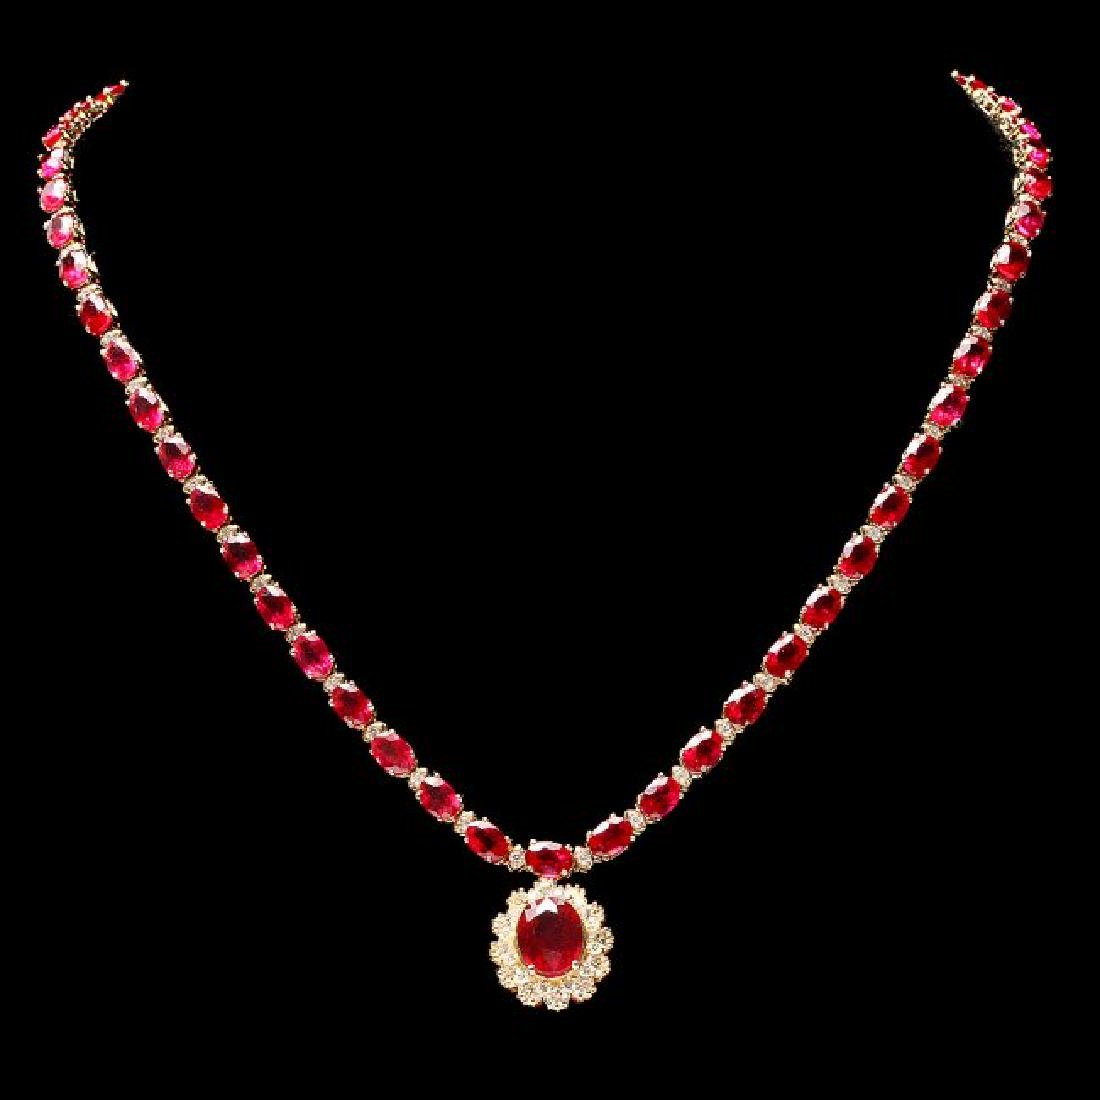 14k Gold 40.5ct Ruby 2.55ct Diamond Necklace